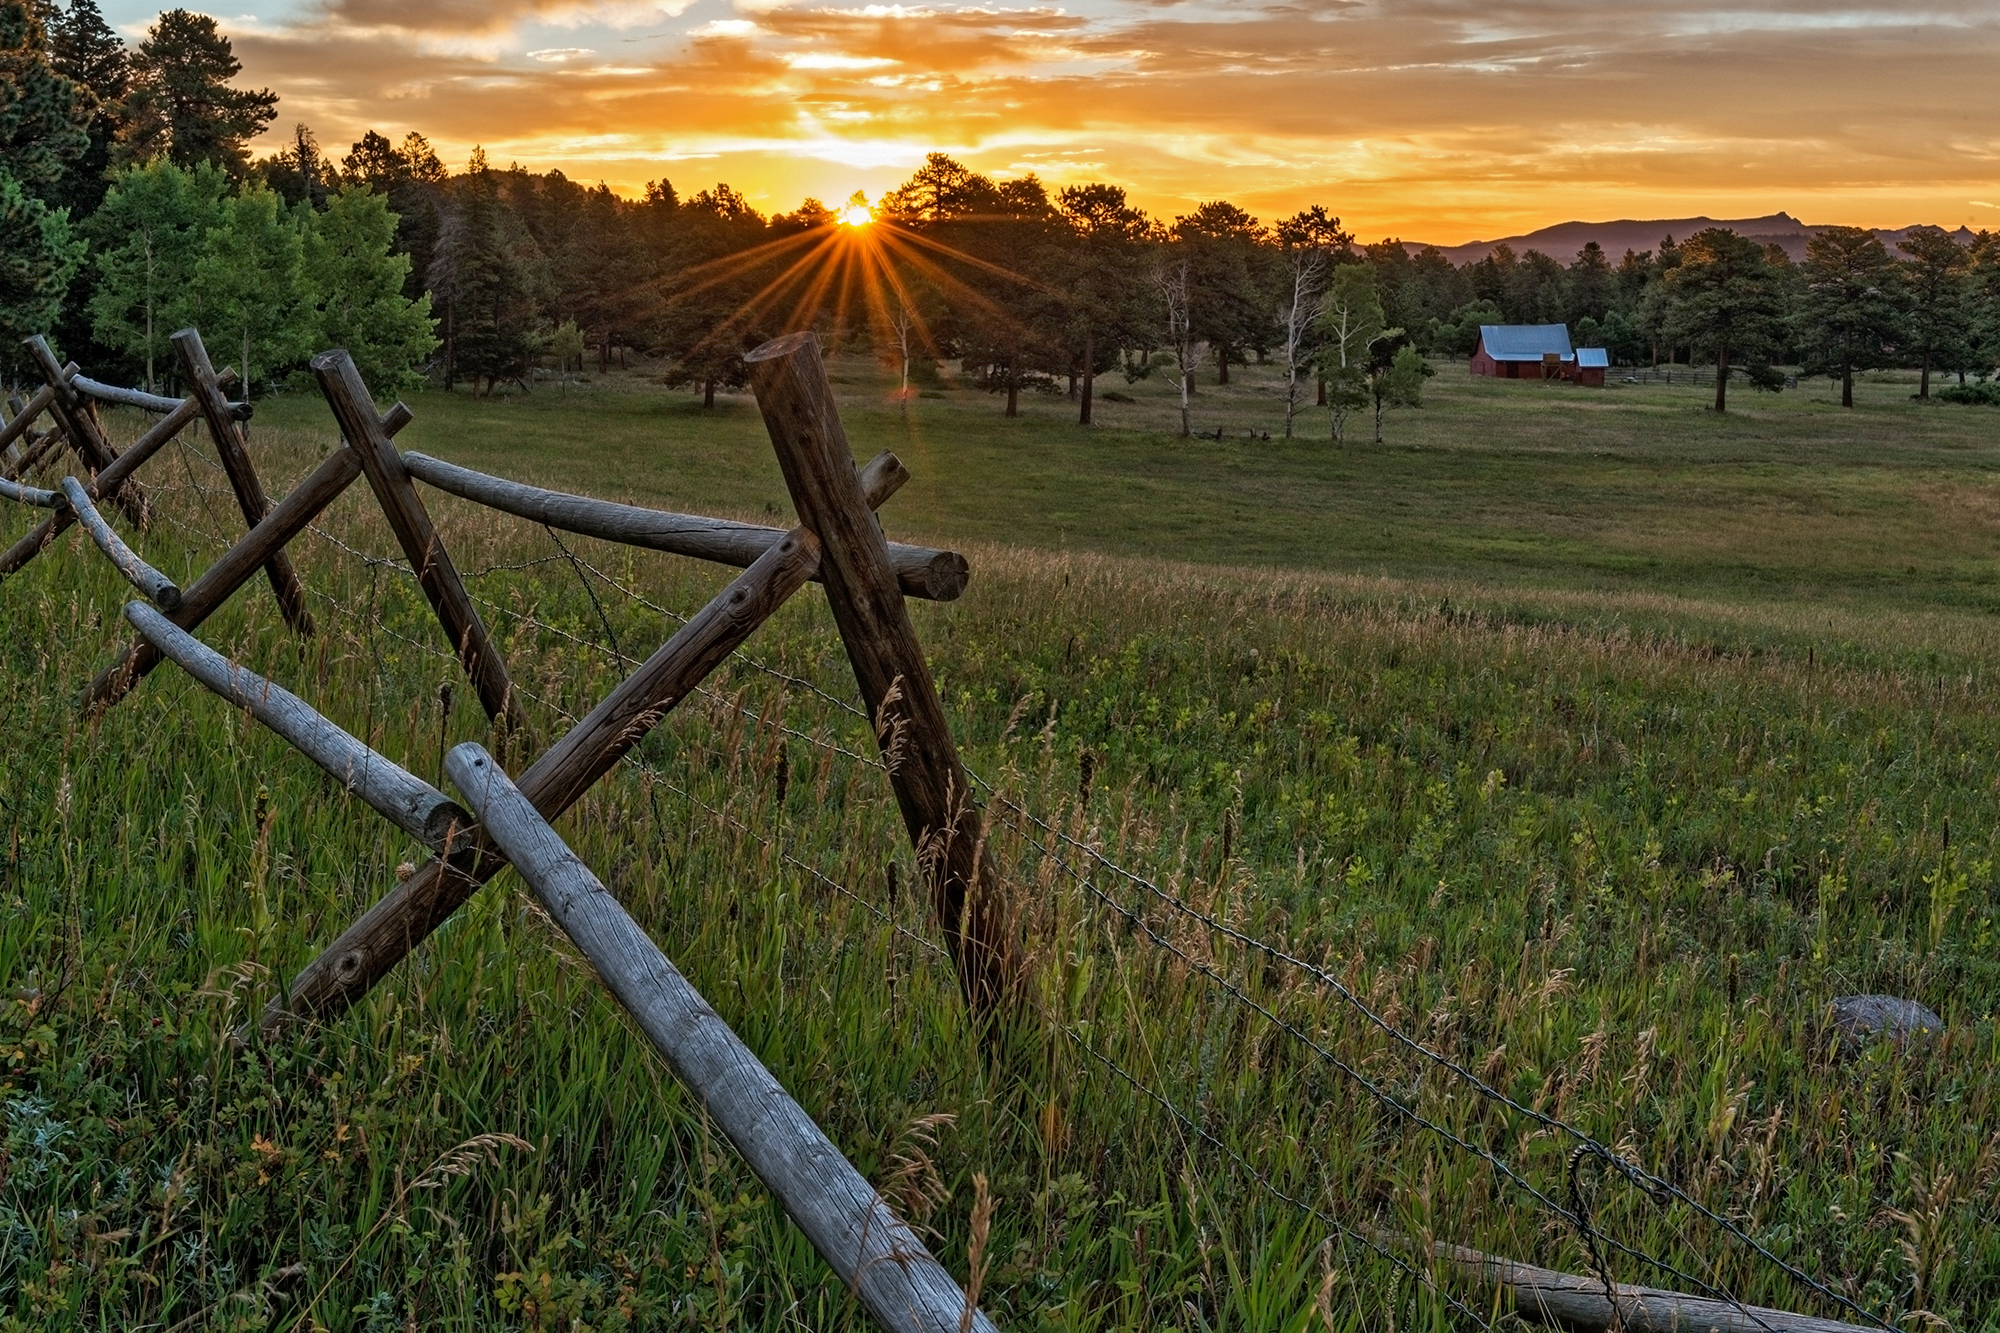 Red Barn at Sunrise. Caribou Ranch Open Space, Colorado, 2016